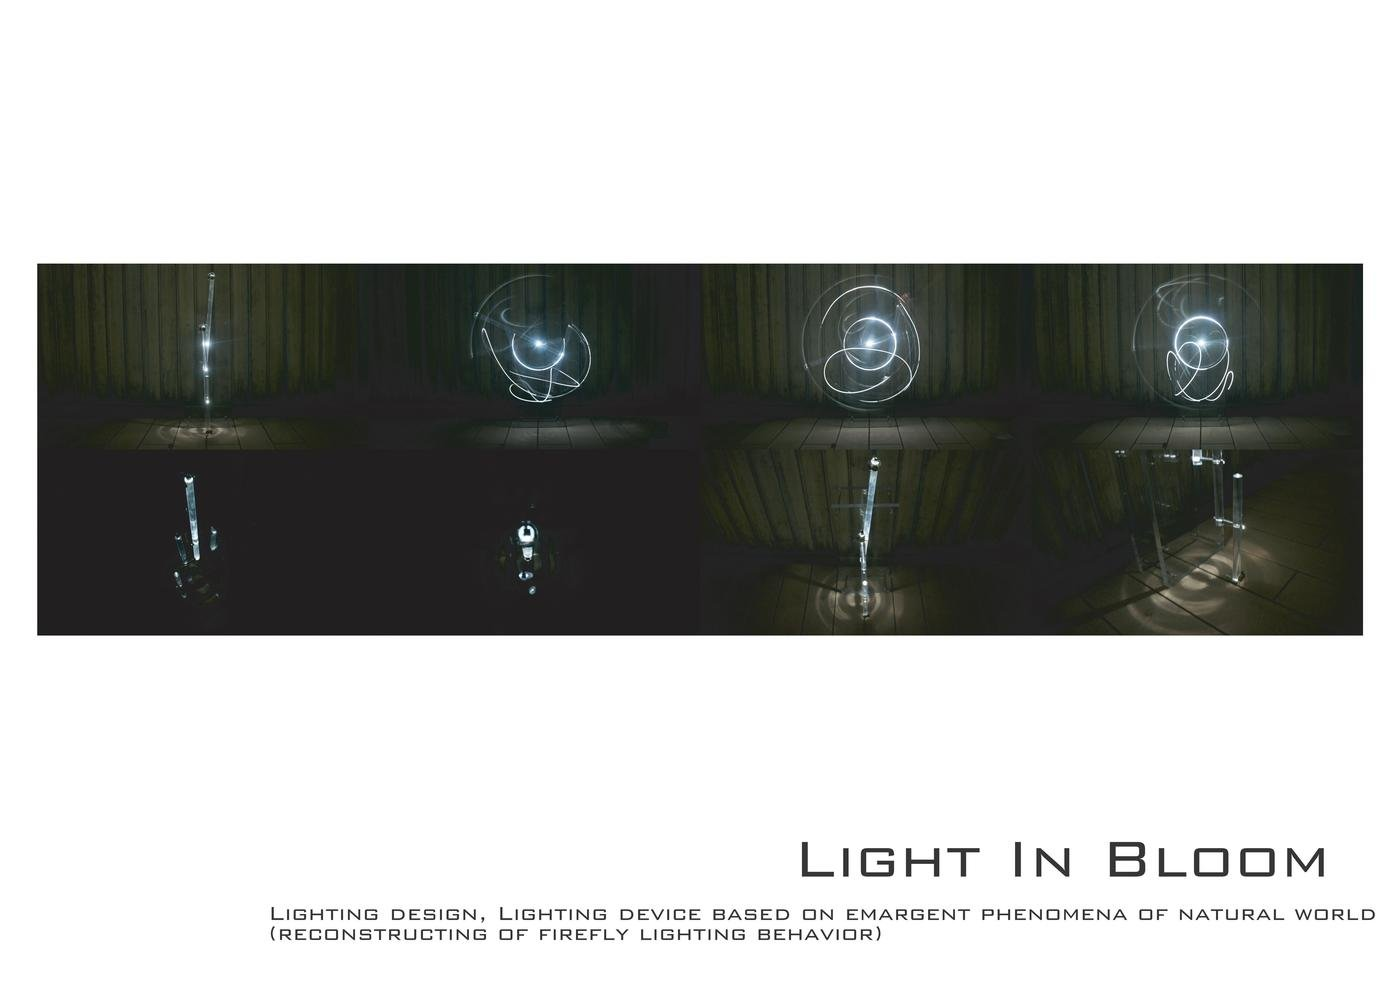 Light In Bloom イメージ 2